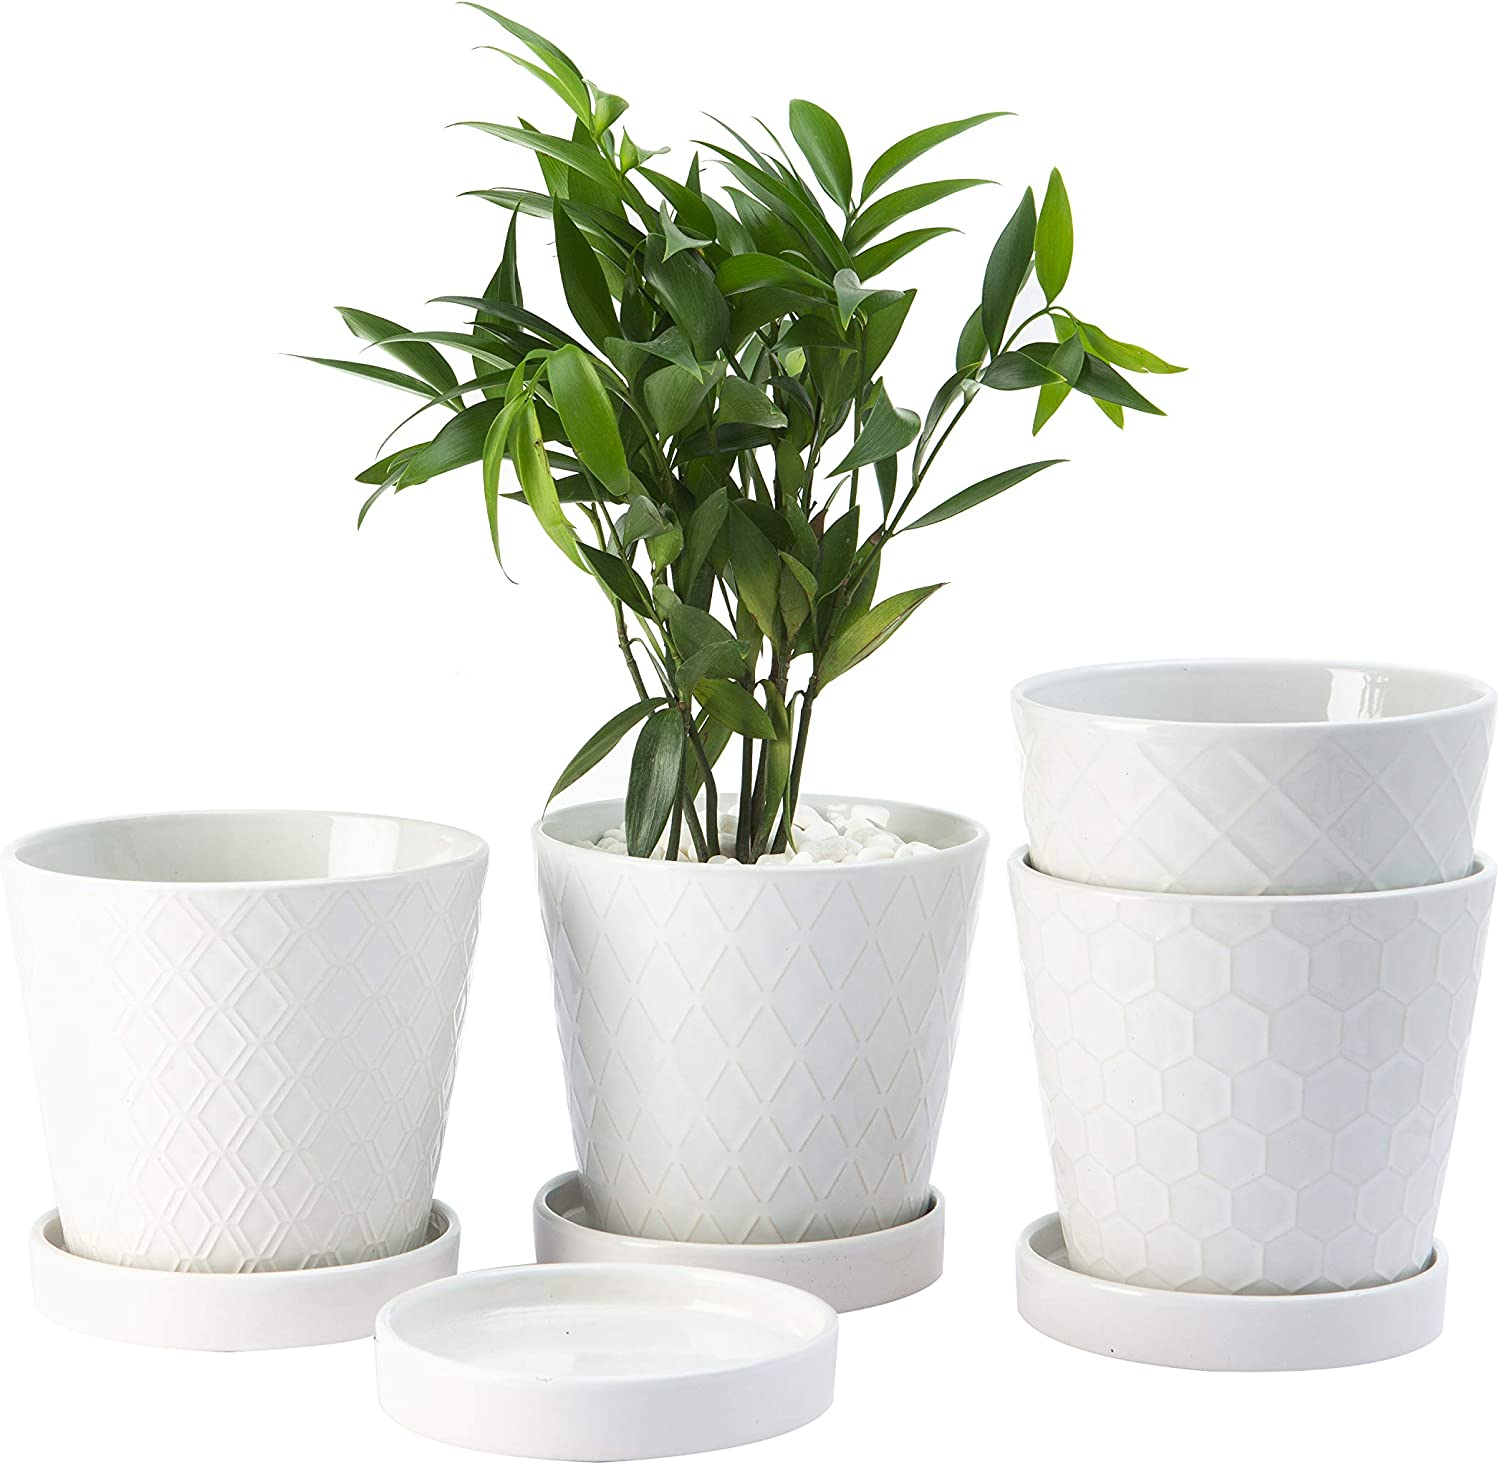 "BUYMAX Plant Pots Indoor –5""inch Ceramic Flower Pot with Drainage Holes and Ceramic Tray - Gardening Home Desktop Office Windowsill Decoration Gift Set 4 - Plants NOT Included"